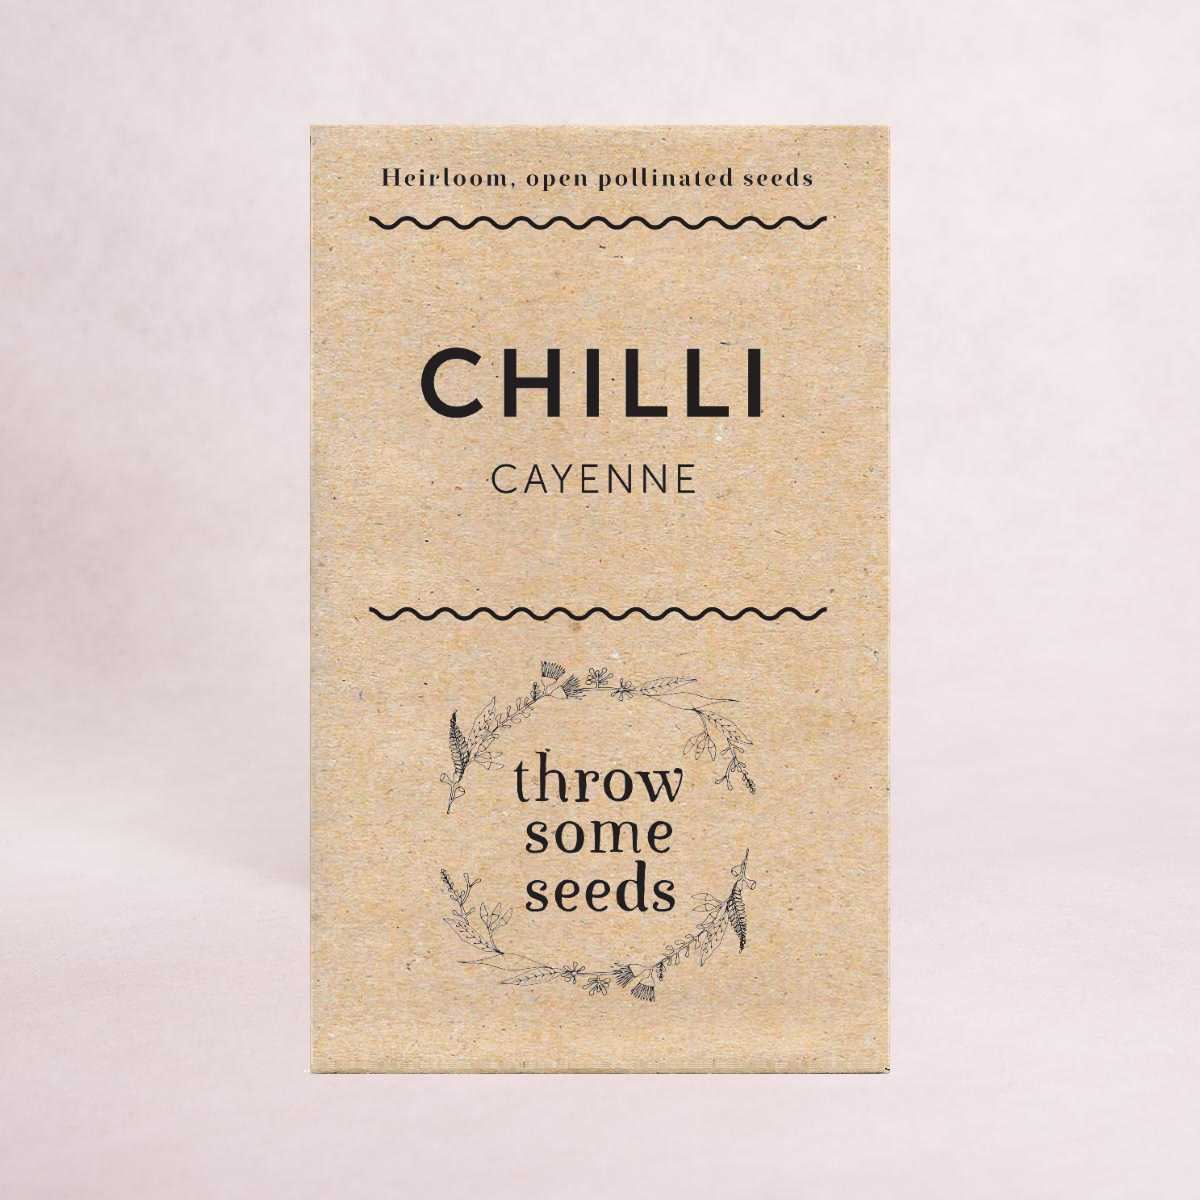 Chilli (Cayenne) - Heirloom Seeds - Seeds - Throw Some Seeds